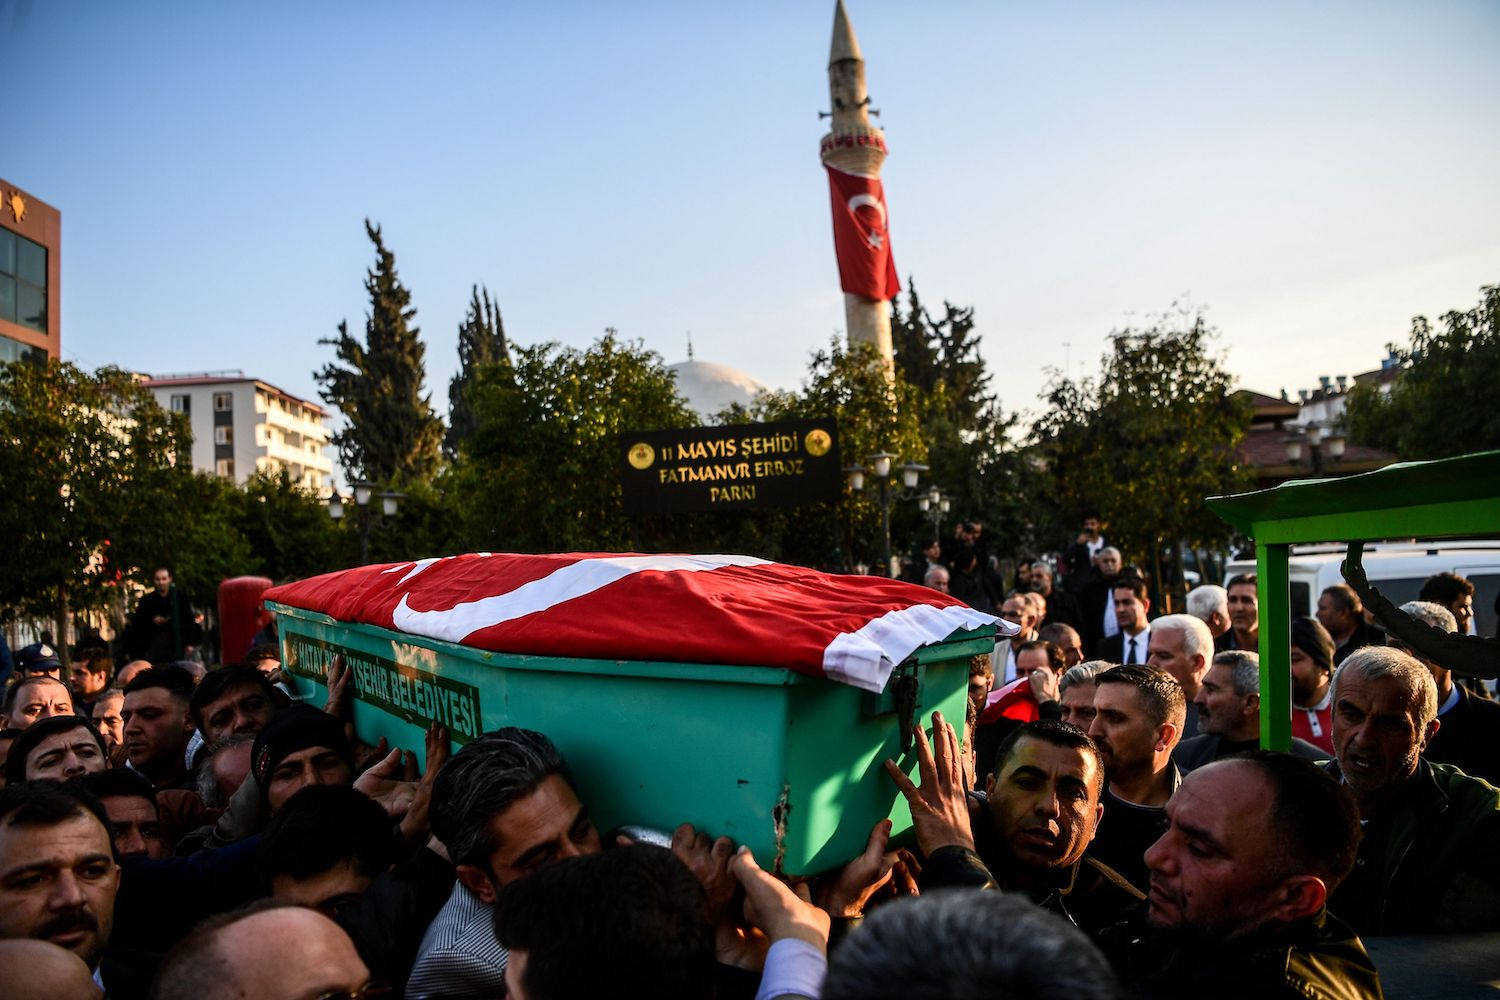 TOPSHOT - People carry a coffin covered with a Turkish flag during a funeral cerenomy for a man killed by rocket fire in Reyhanli, a town close to the Syrian border, on February 2, 2018 in Hatay, southern Turkey. One person was killed and several others wounded on February 2 in a Turkish border town by rockets fired from Syria, local authorities said, as Turkey continues its offensive against a Syrian Kurdish militia. / AFP PHOTO / OZAN KOSE        (Photo credit should read OZAN KOSE/AFP/Getty Images)